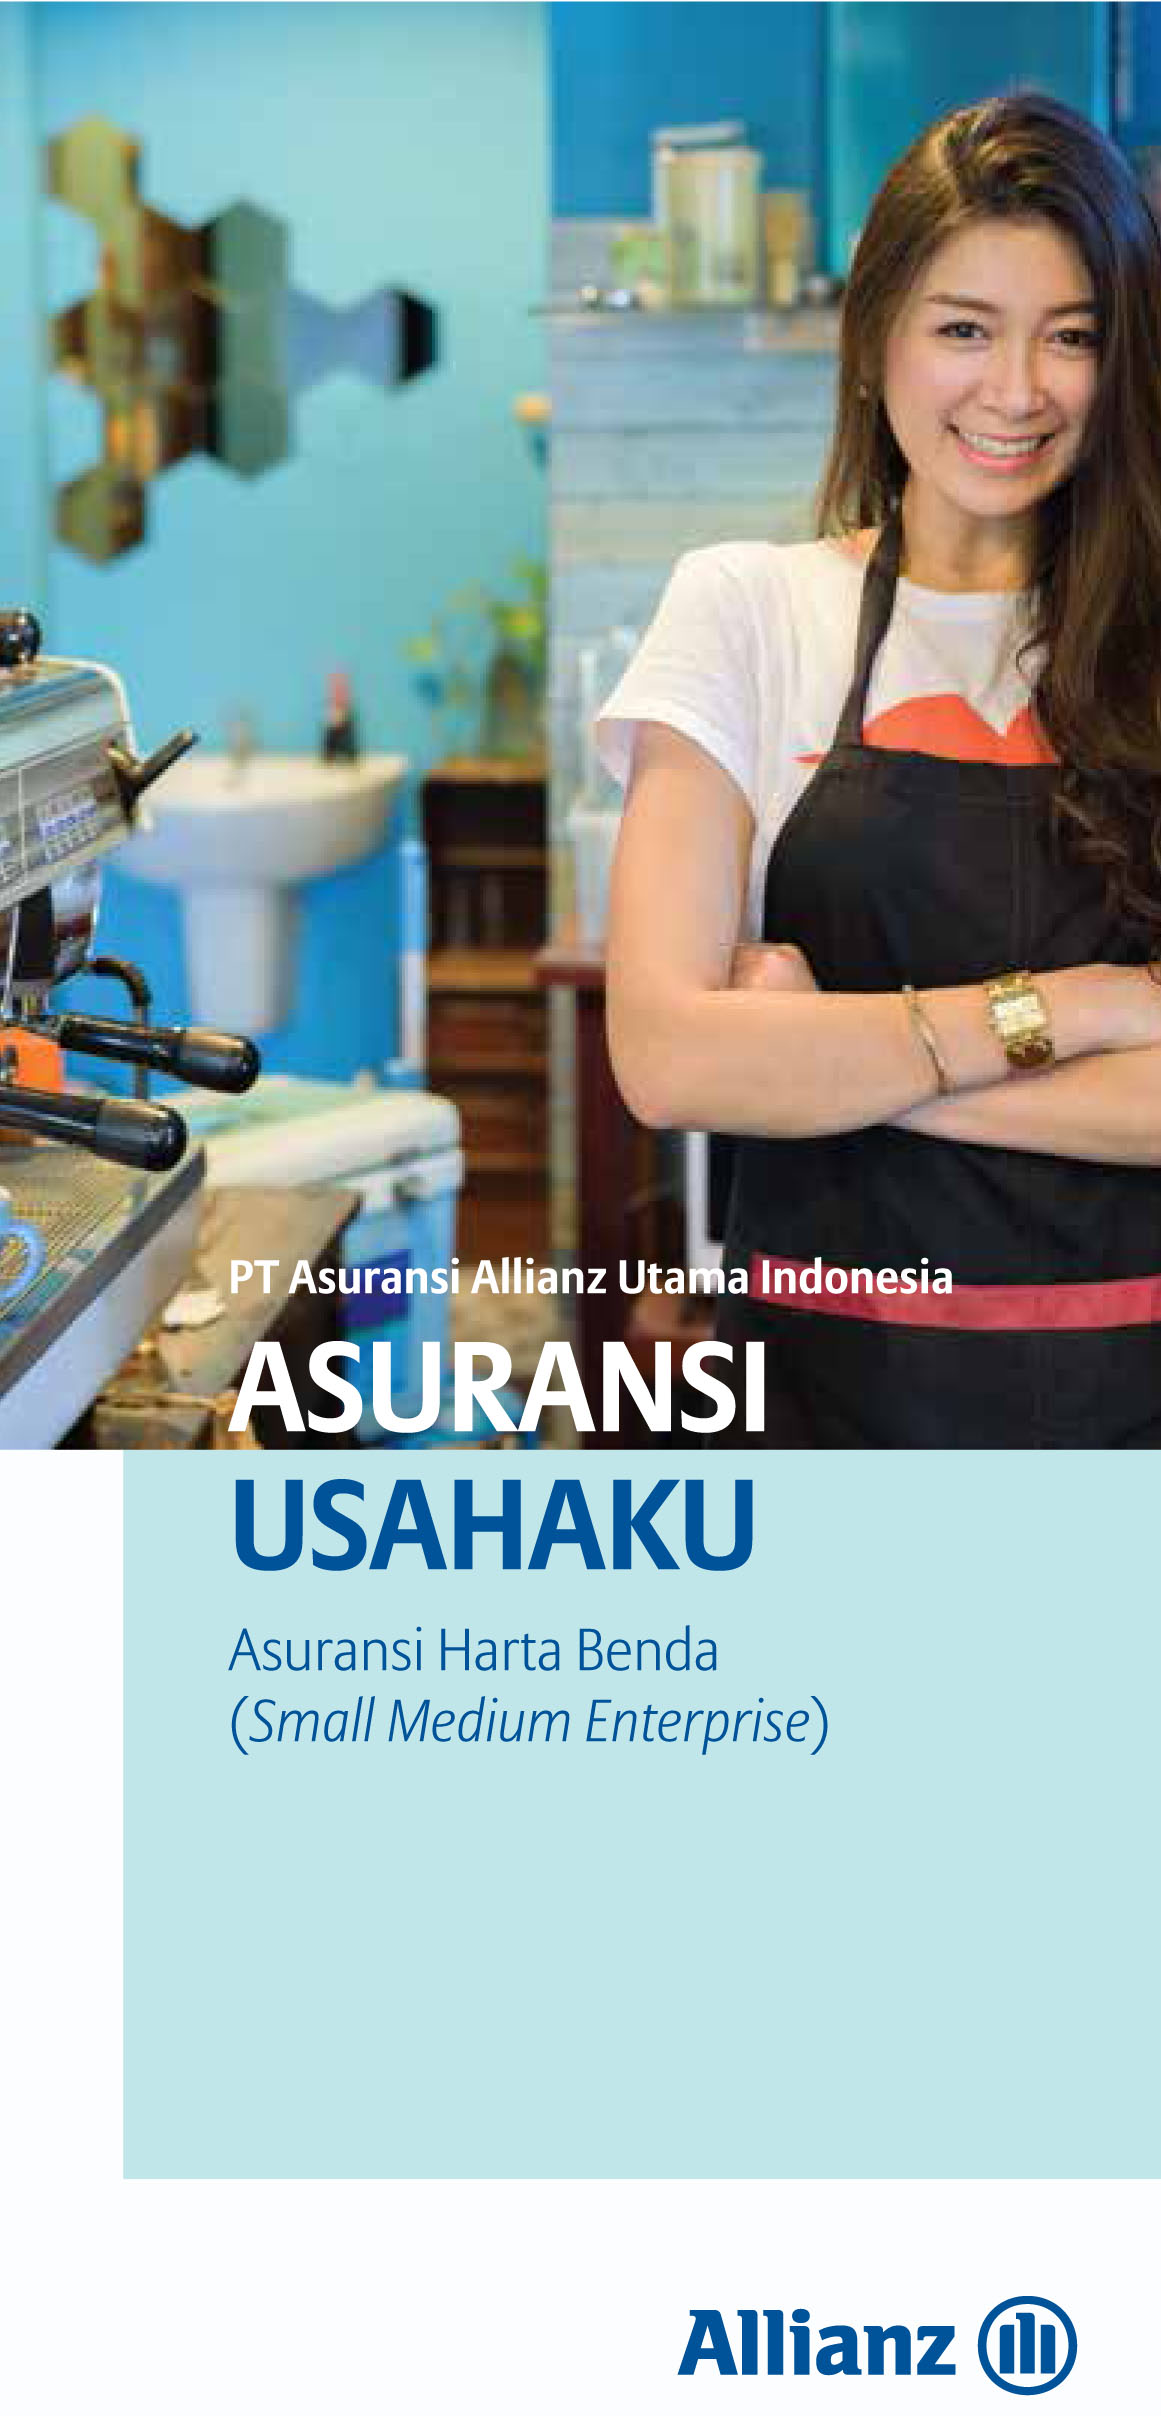 Brosur Asuransi UsahaKu (Small Medium Enterprise)_v1.7